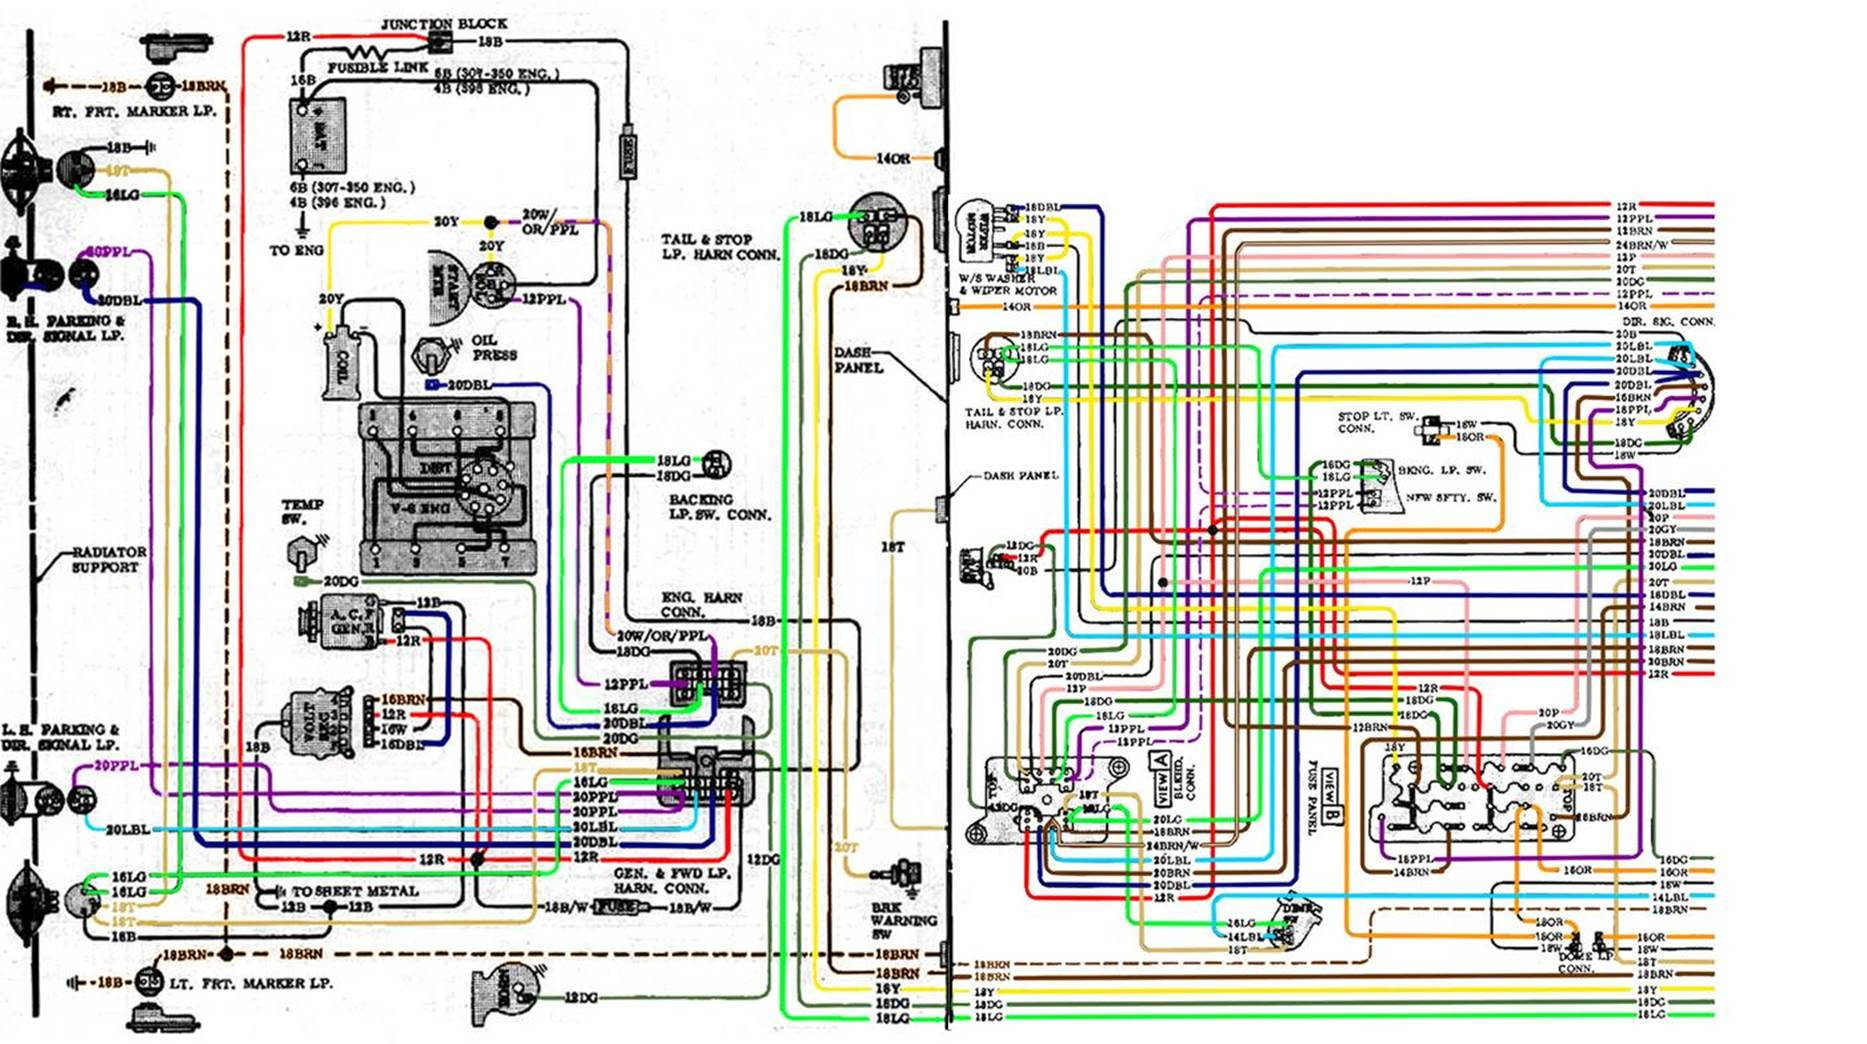 image002 67 72 chevy wiring diagram 68 gmc wiring diagram at bayanpartner.co